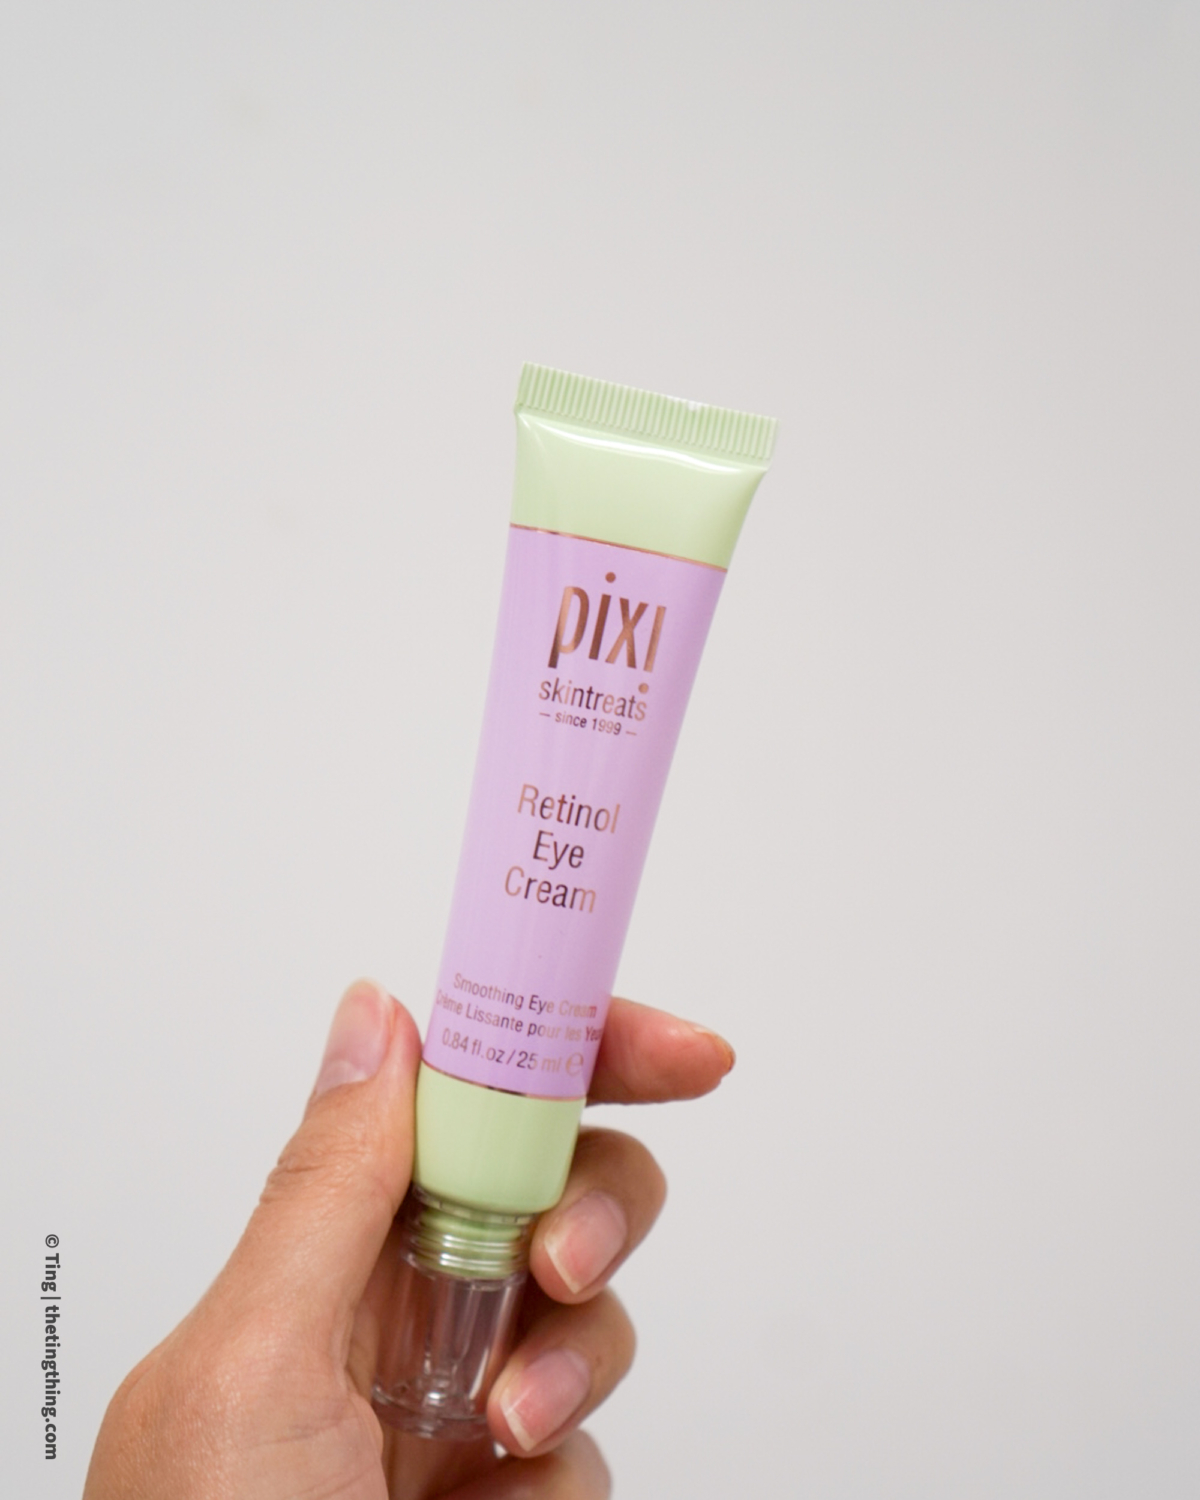 Tube of Pixi Beauty Retinol Eye Cream held by a Chinese woman against a pale wall background.